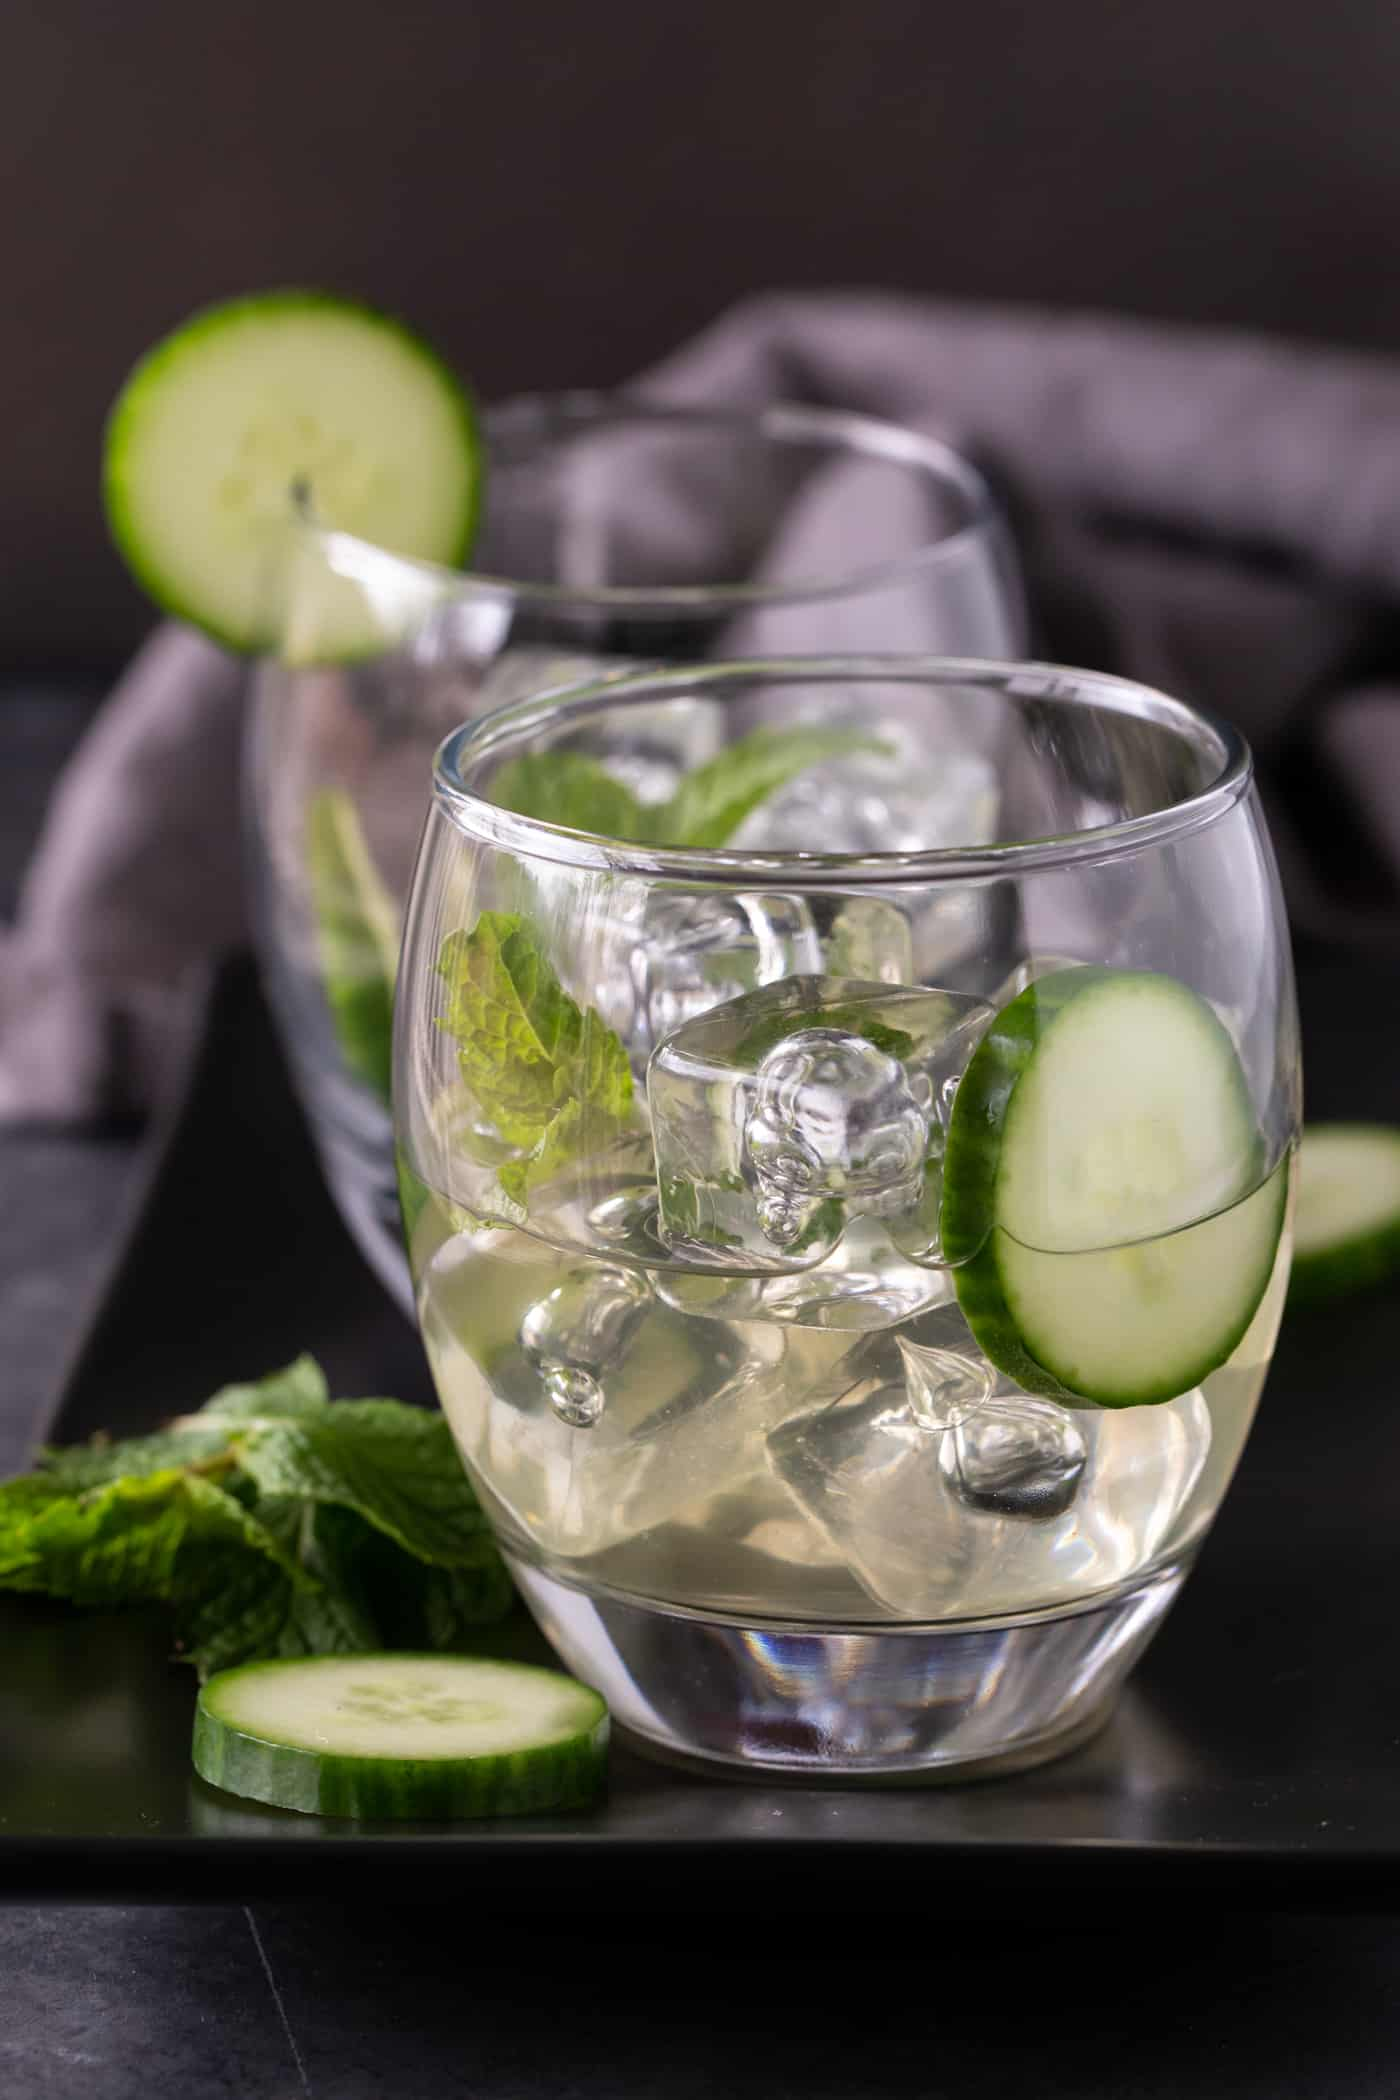 Two low ball glasses of Cucumber Melon Sangria garnished with fresh cucumber slices and fresh mint leaves.